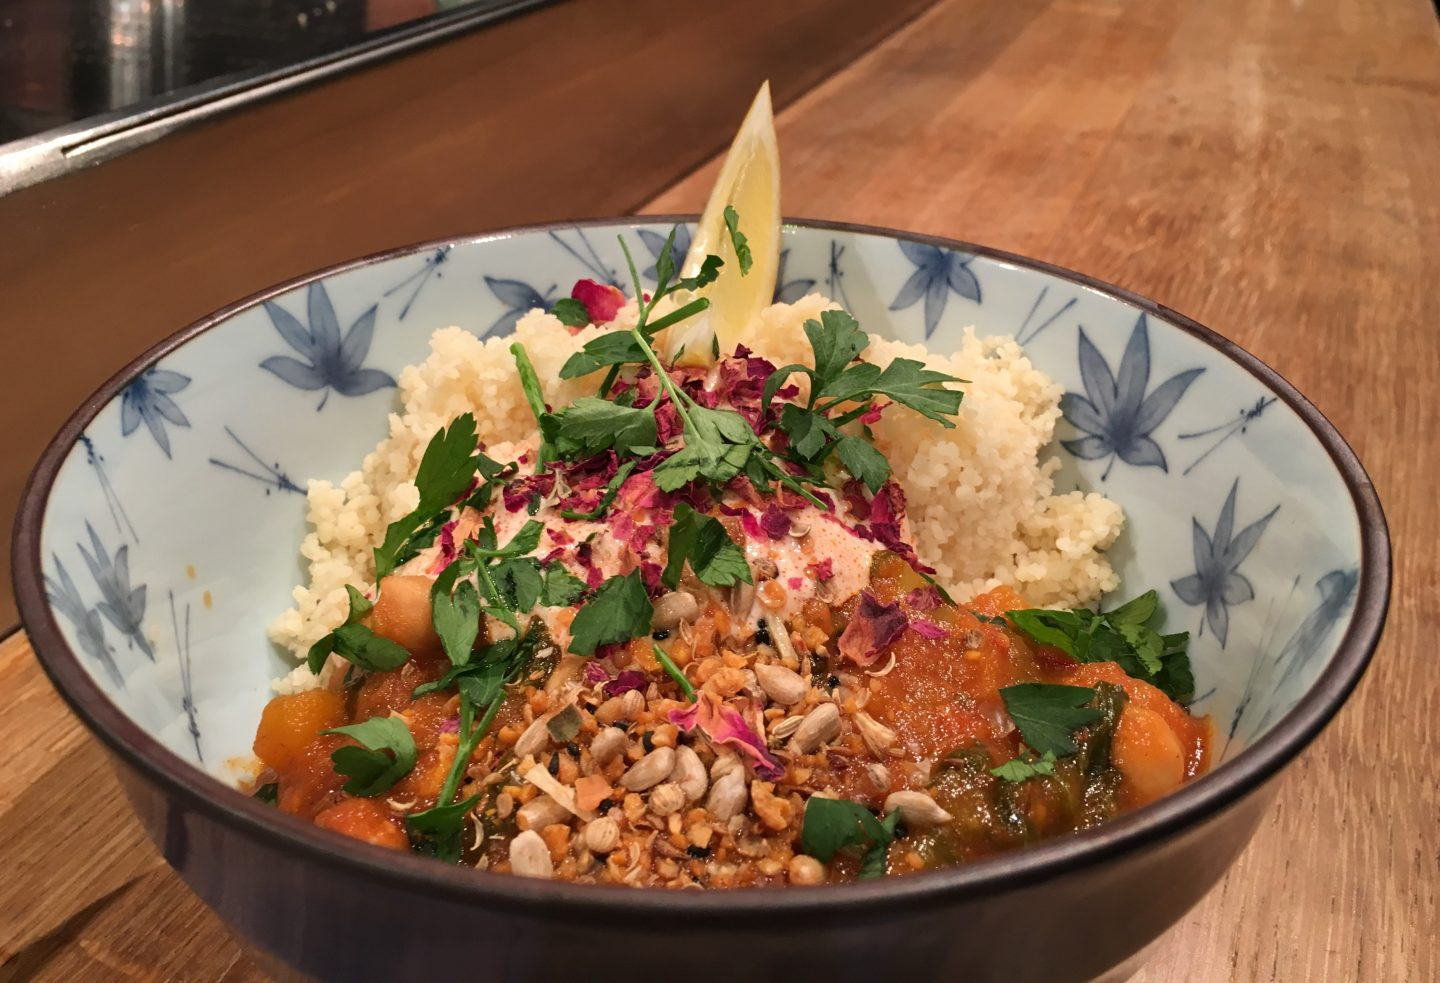 Butternut squash and chickpea stew at BelFeast Food and Drink Festival